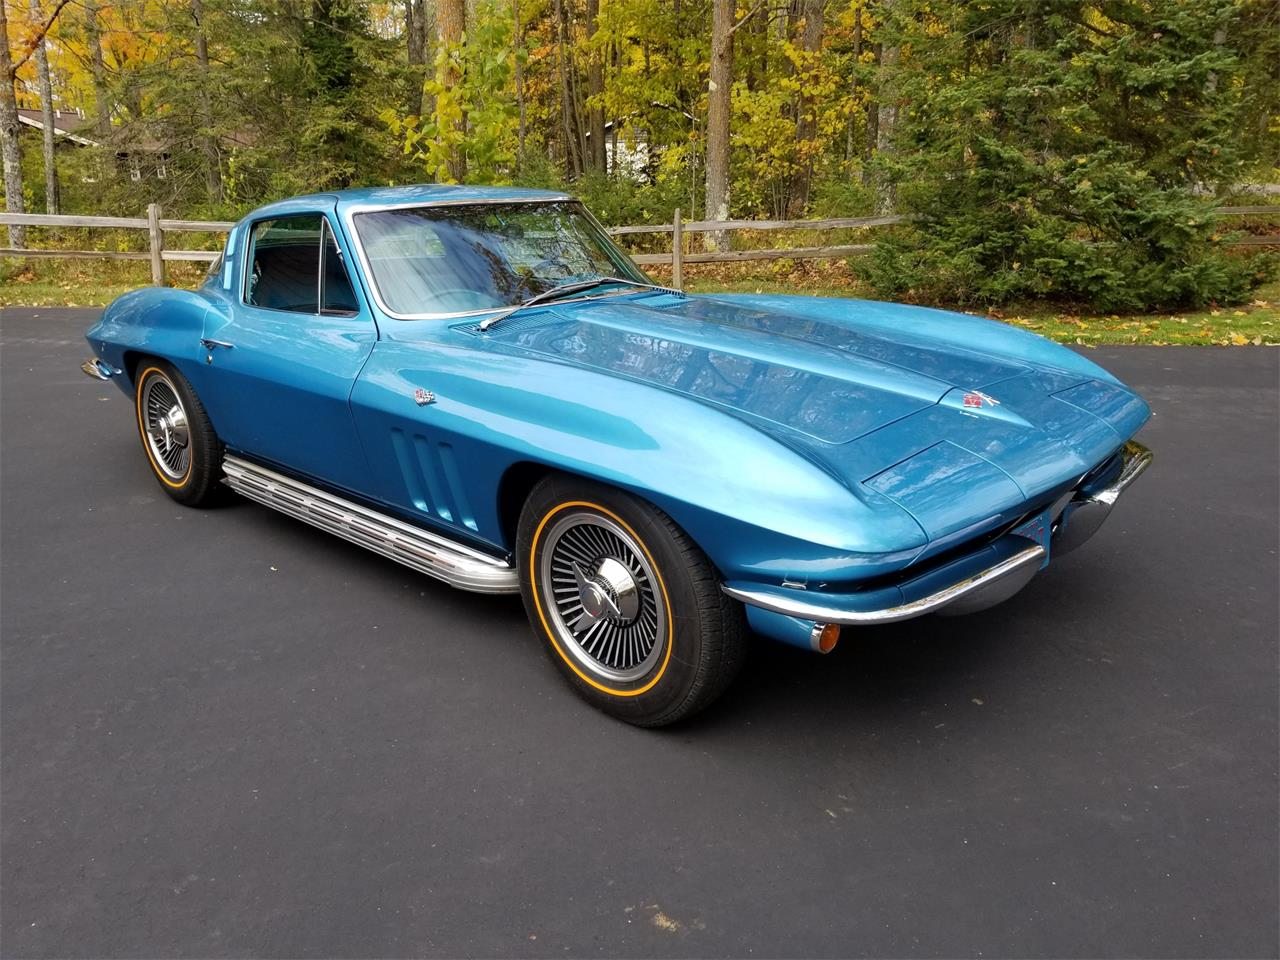 1965 Chevrolet Corvette Stingray (CC-1381599) for sale in Cable, Wisconsin